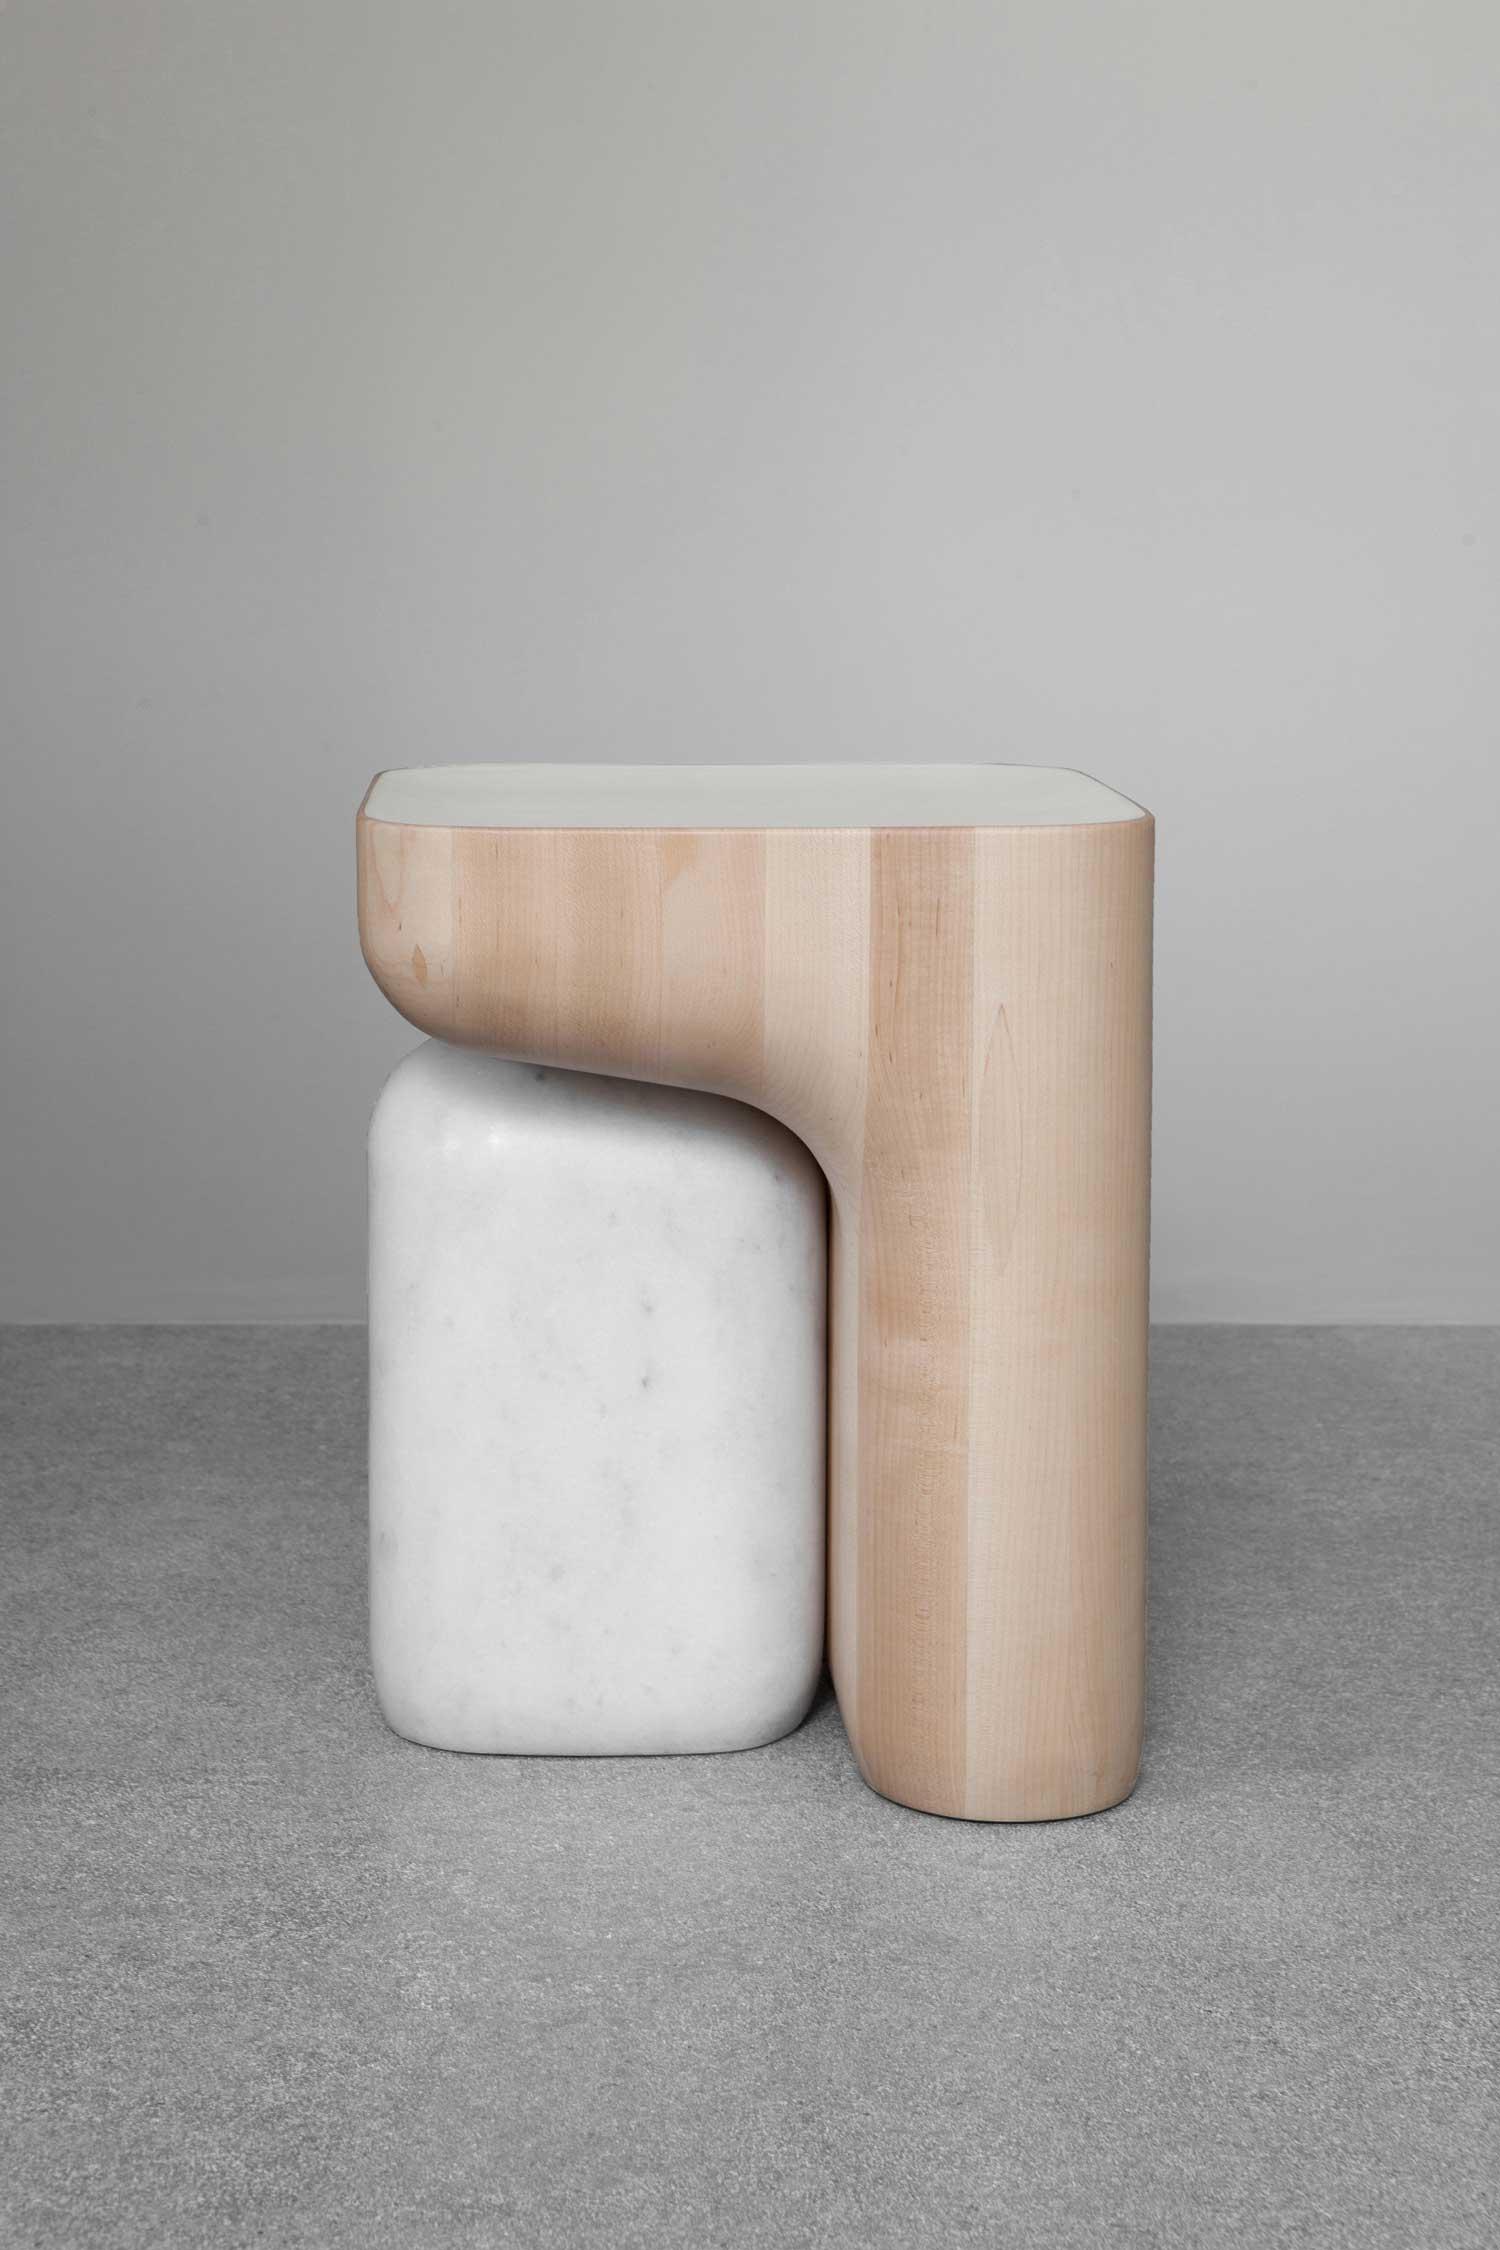 Guillaume Delvigne Stools4tools At The Toolsgalerie Paris